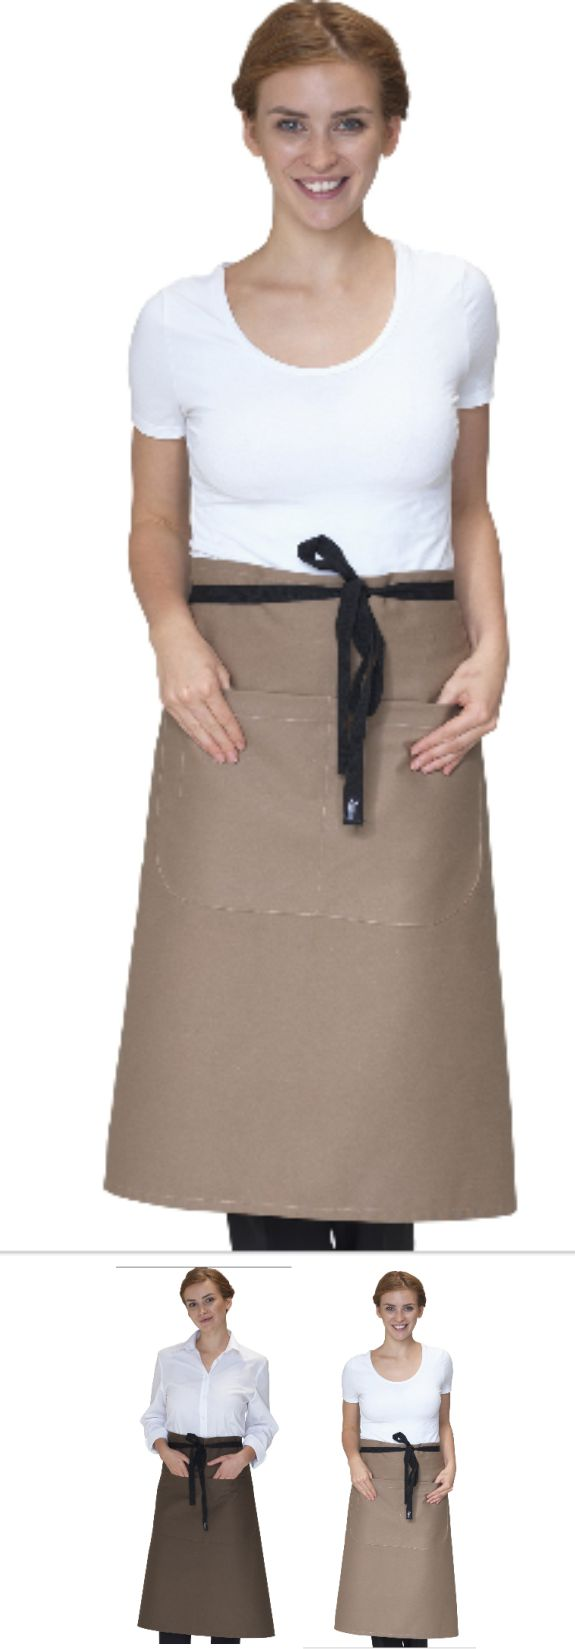 DP106 Canvas Waist Apron With Pocket